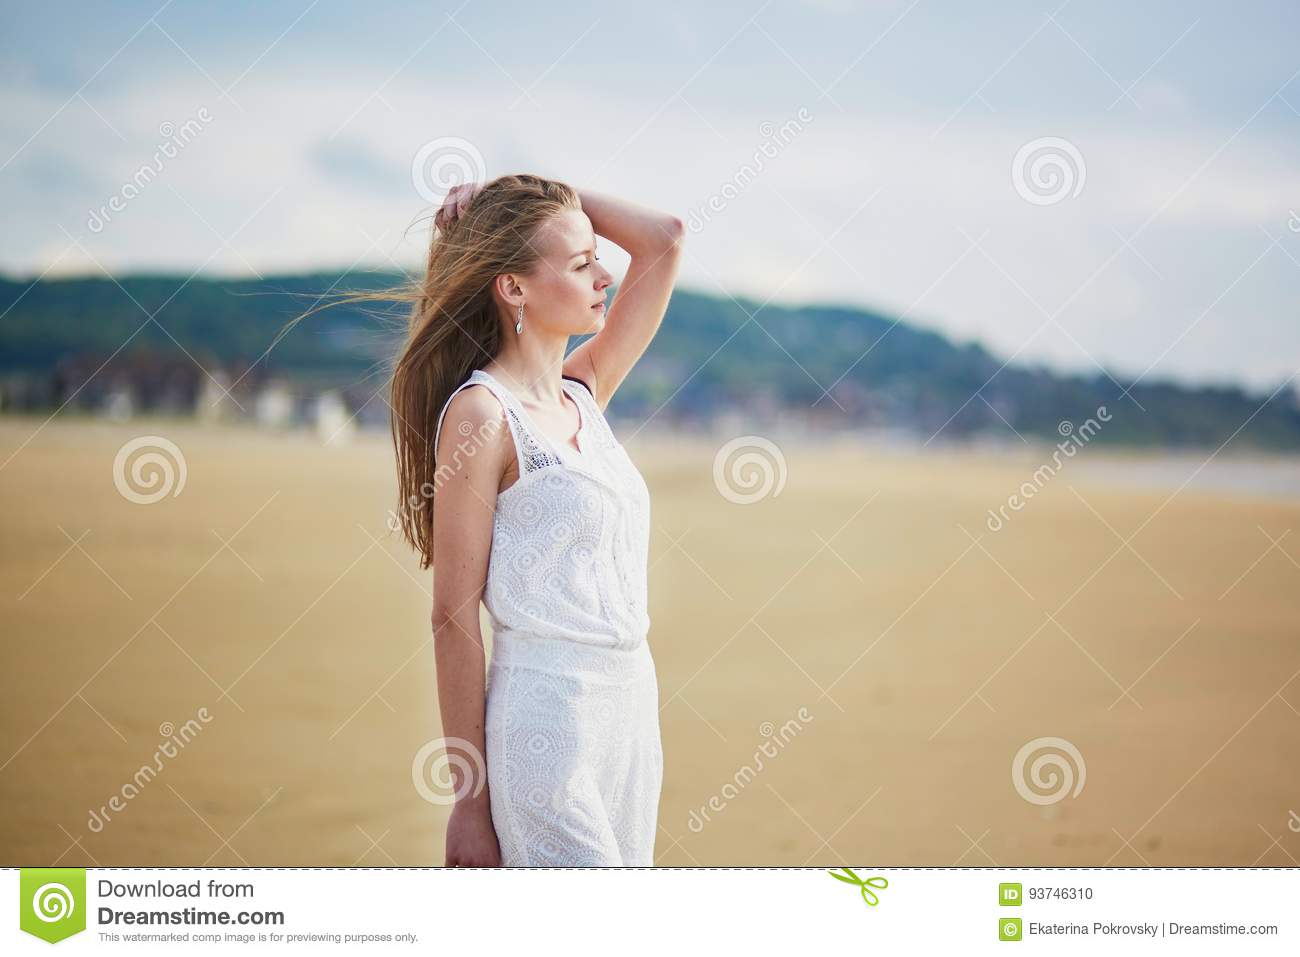 Girl Sitting On Sand Of Beach Stock Photo   Getty Images